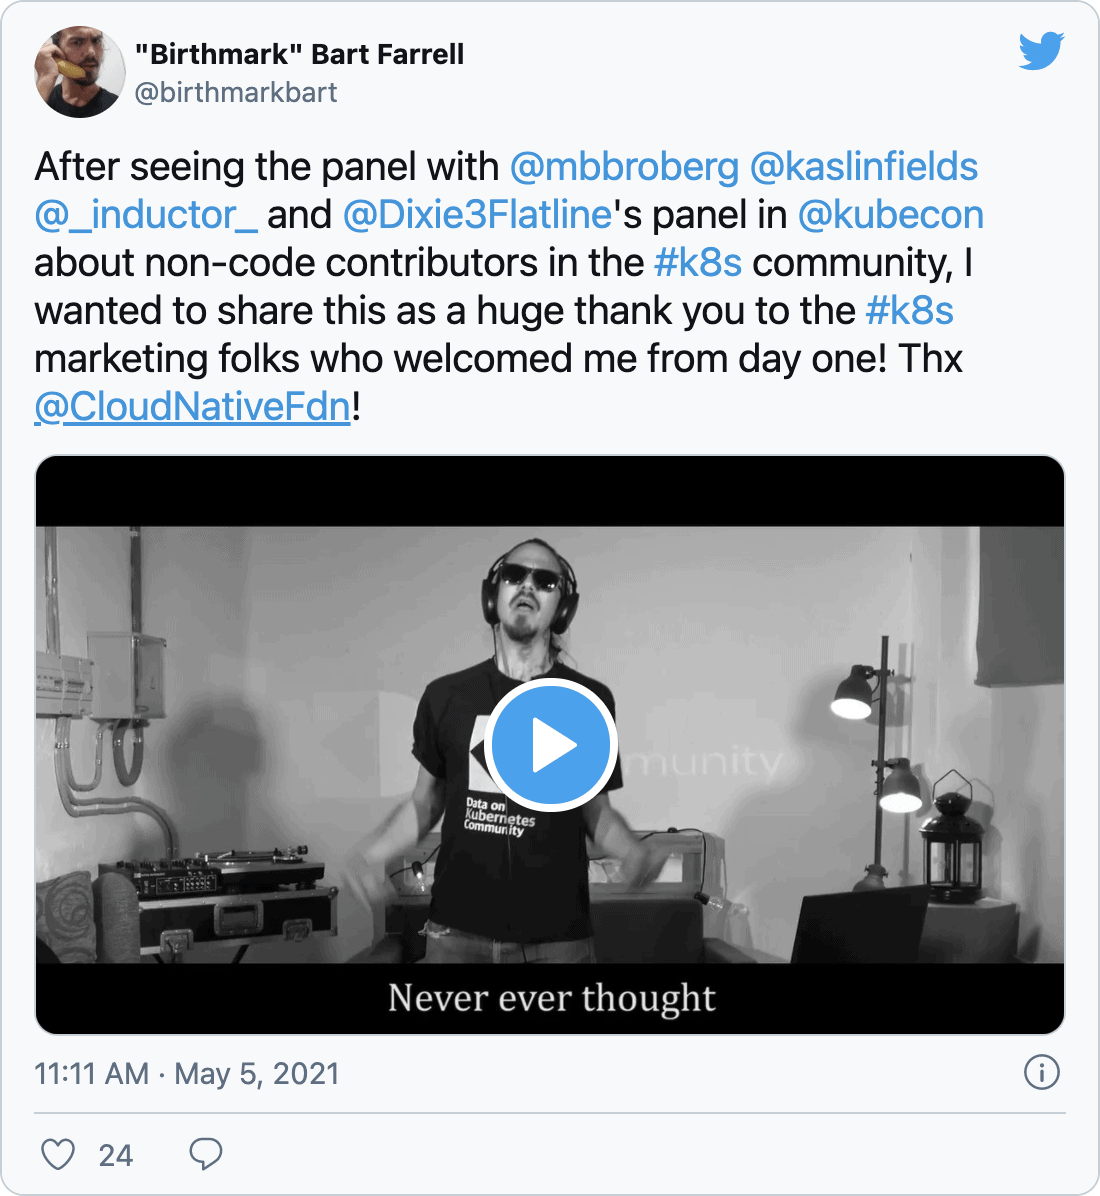 @birthmarkbart on Twitter: After seeing the panel with @mbbroberg @kaslinfields @_inductor_ and @Dixie3Flatline's panel in @kubecon about non-code contributors in the #k8s community, I wanted to share this as a huge thank you to the #k8s marketing folks who welcomed me from day one! Thx @CloudNativeFdn!